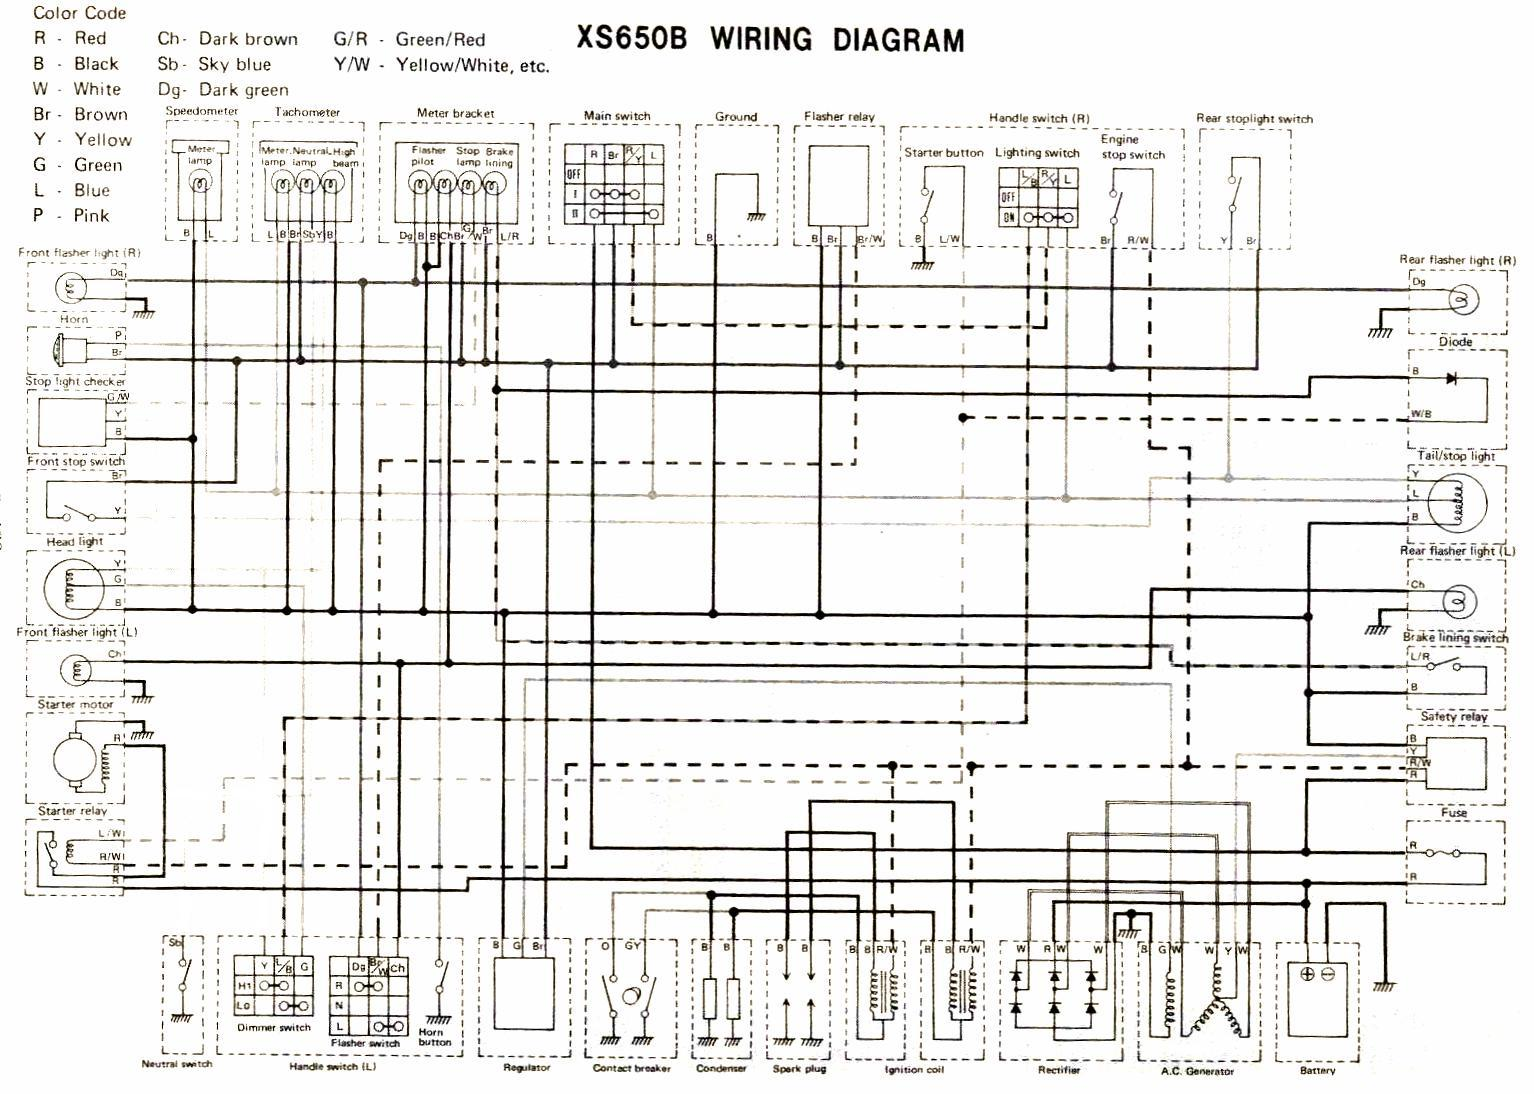 75XS650B wiring diagrams